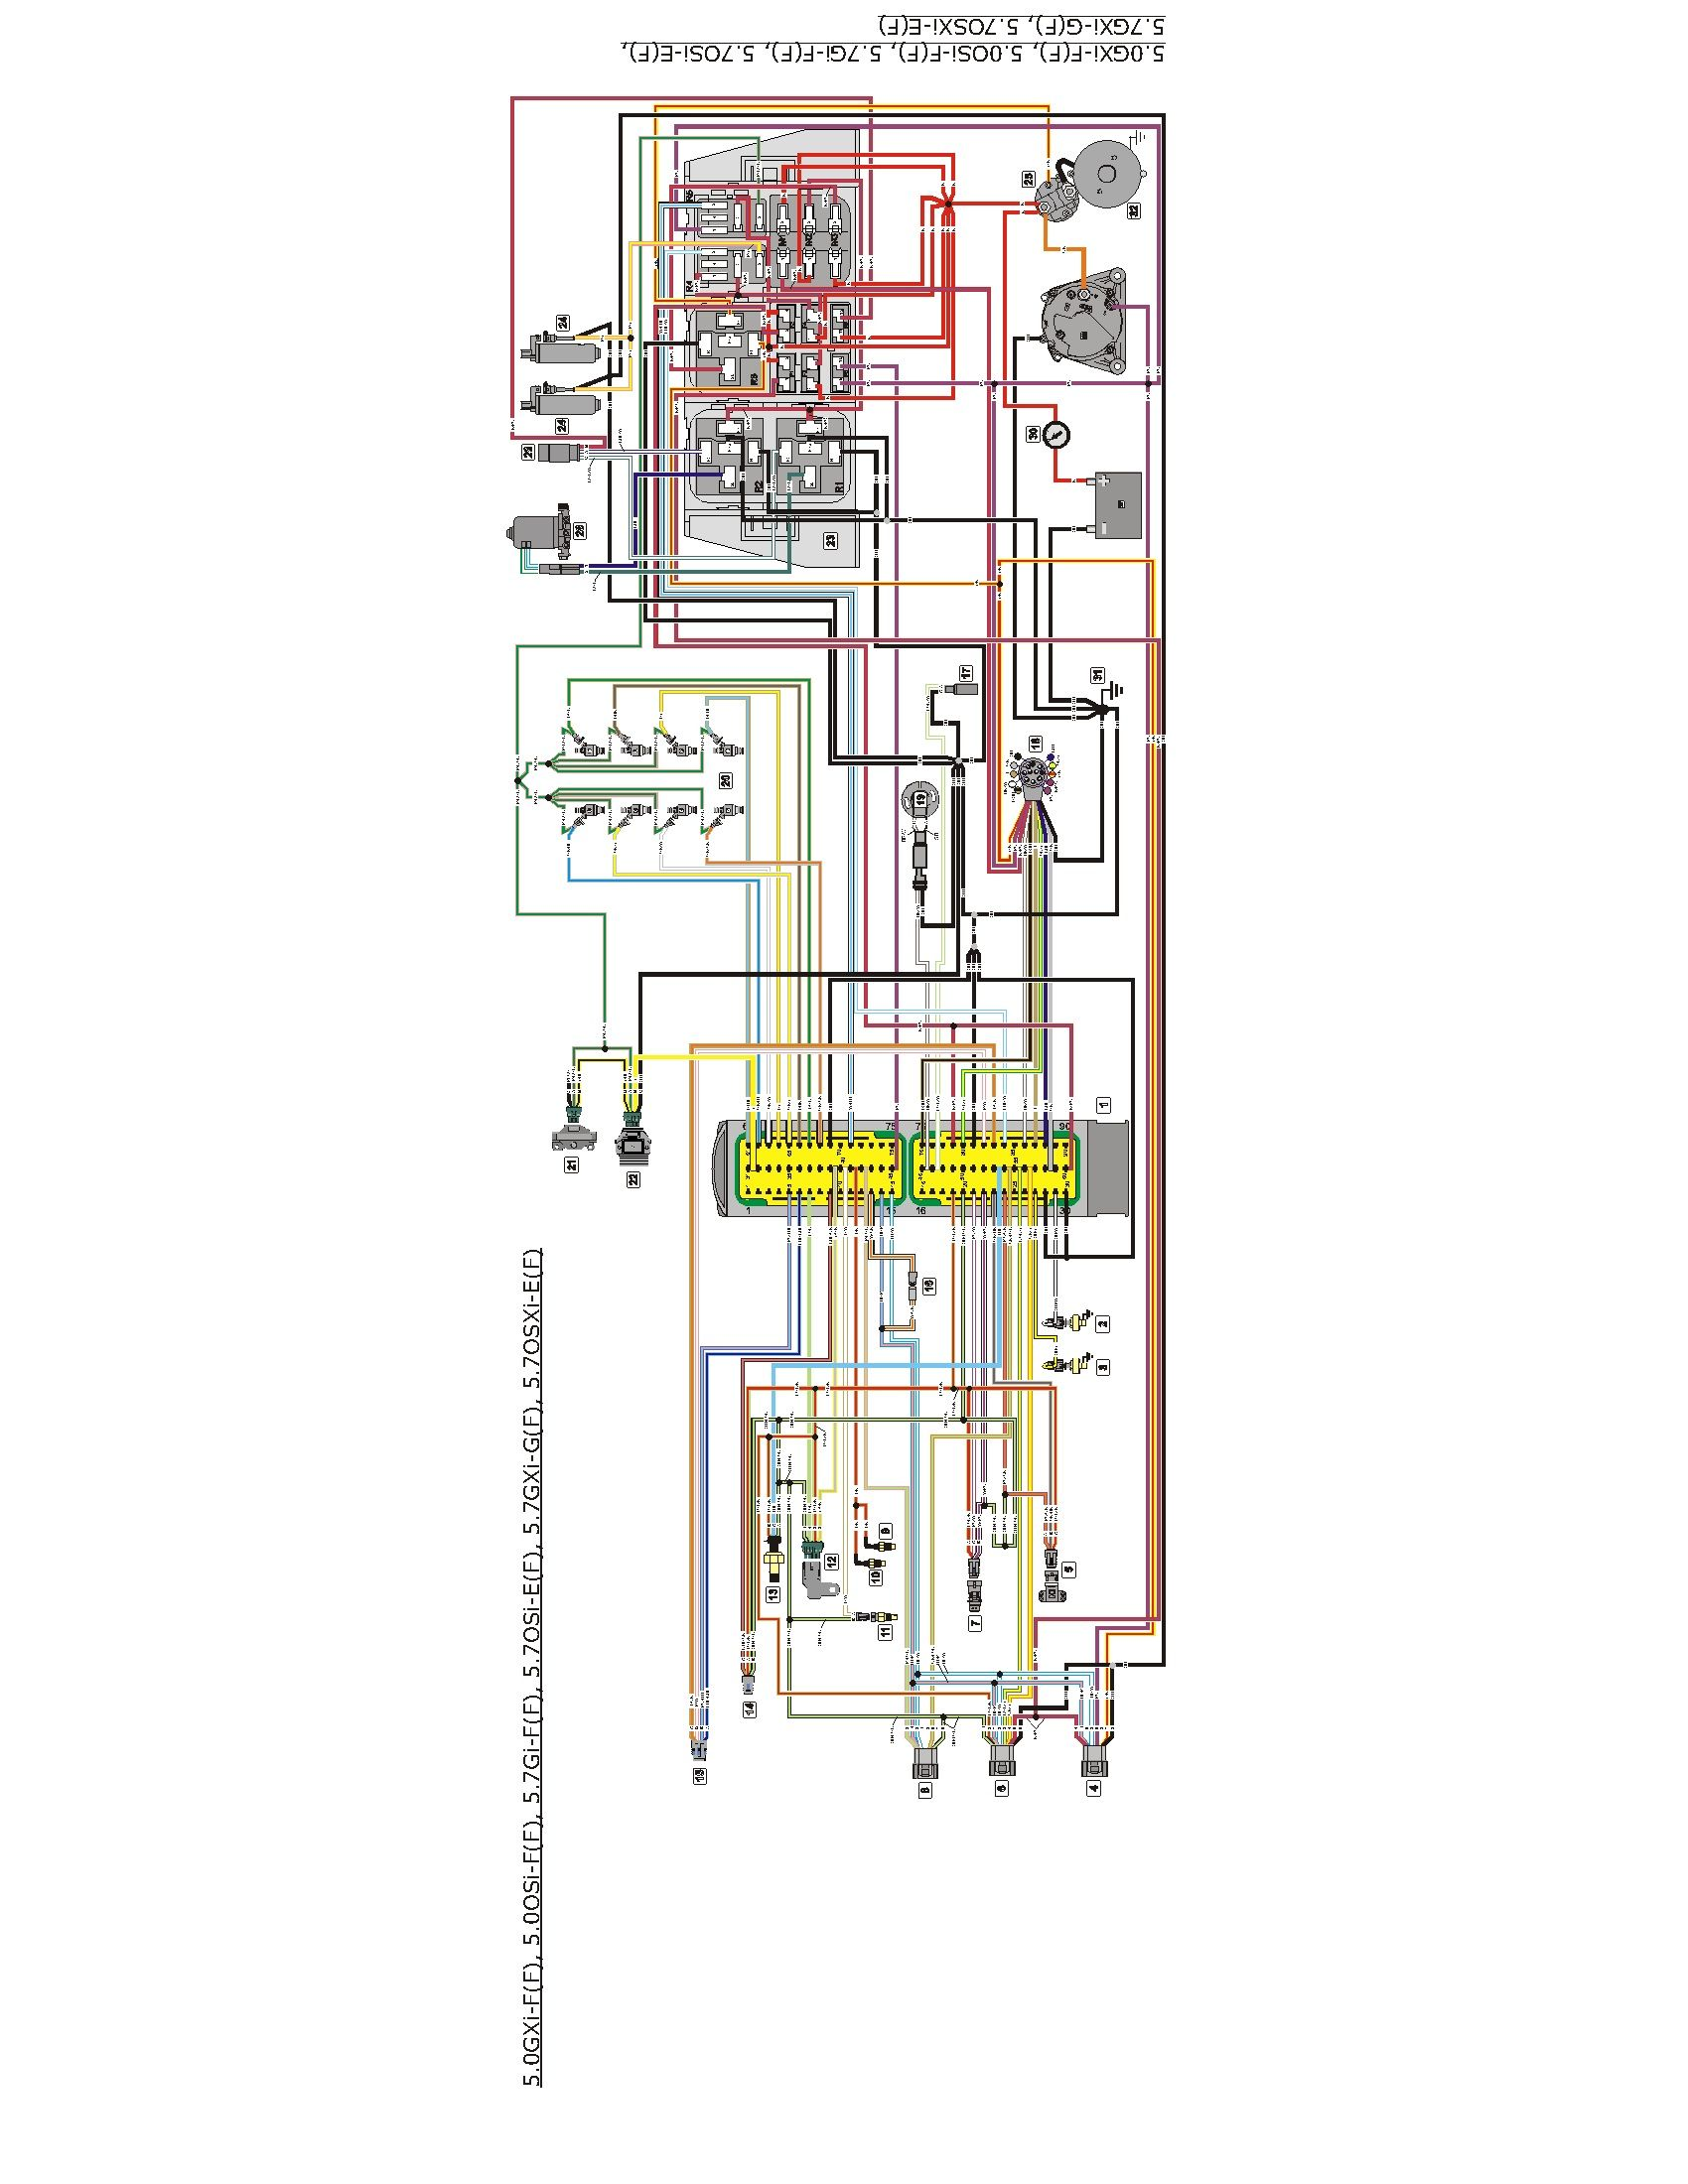 hight resolution of volvo penta 5 7 engine wiring diagram